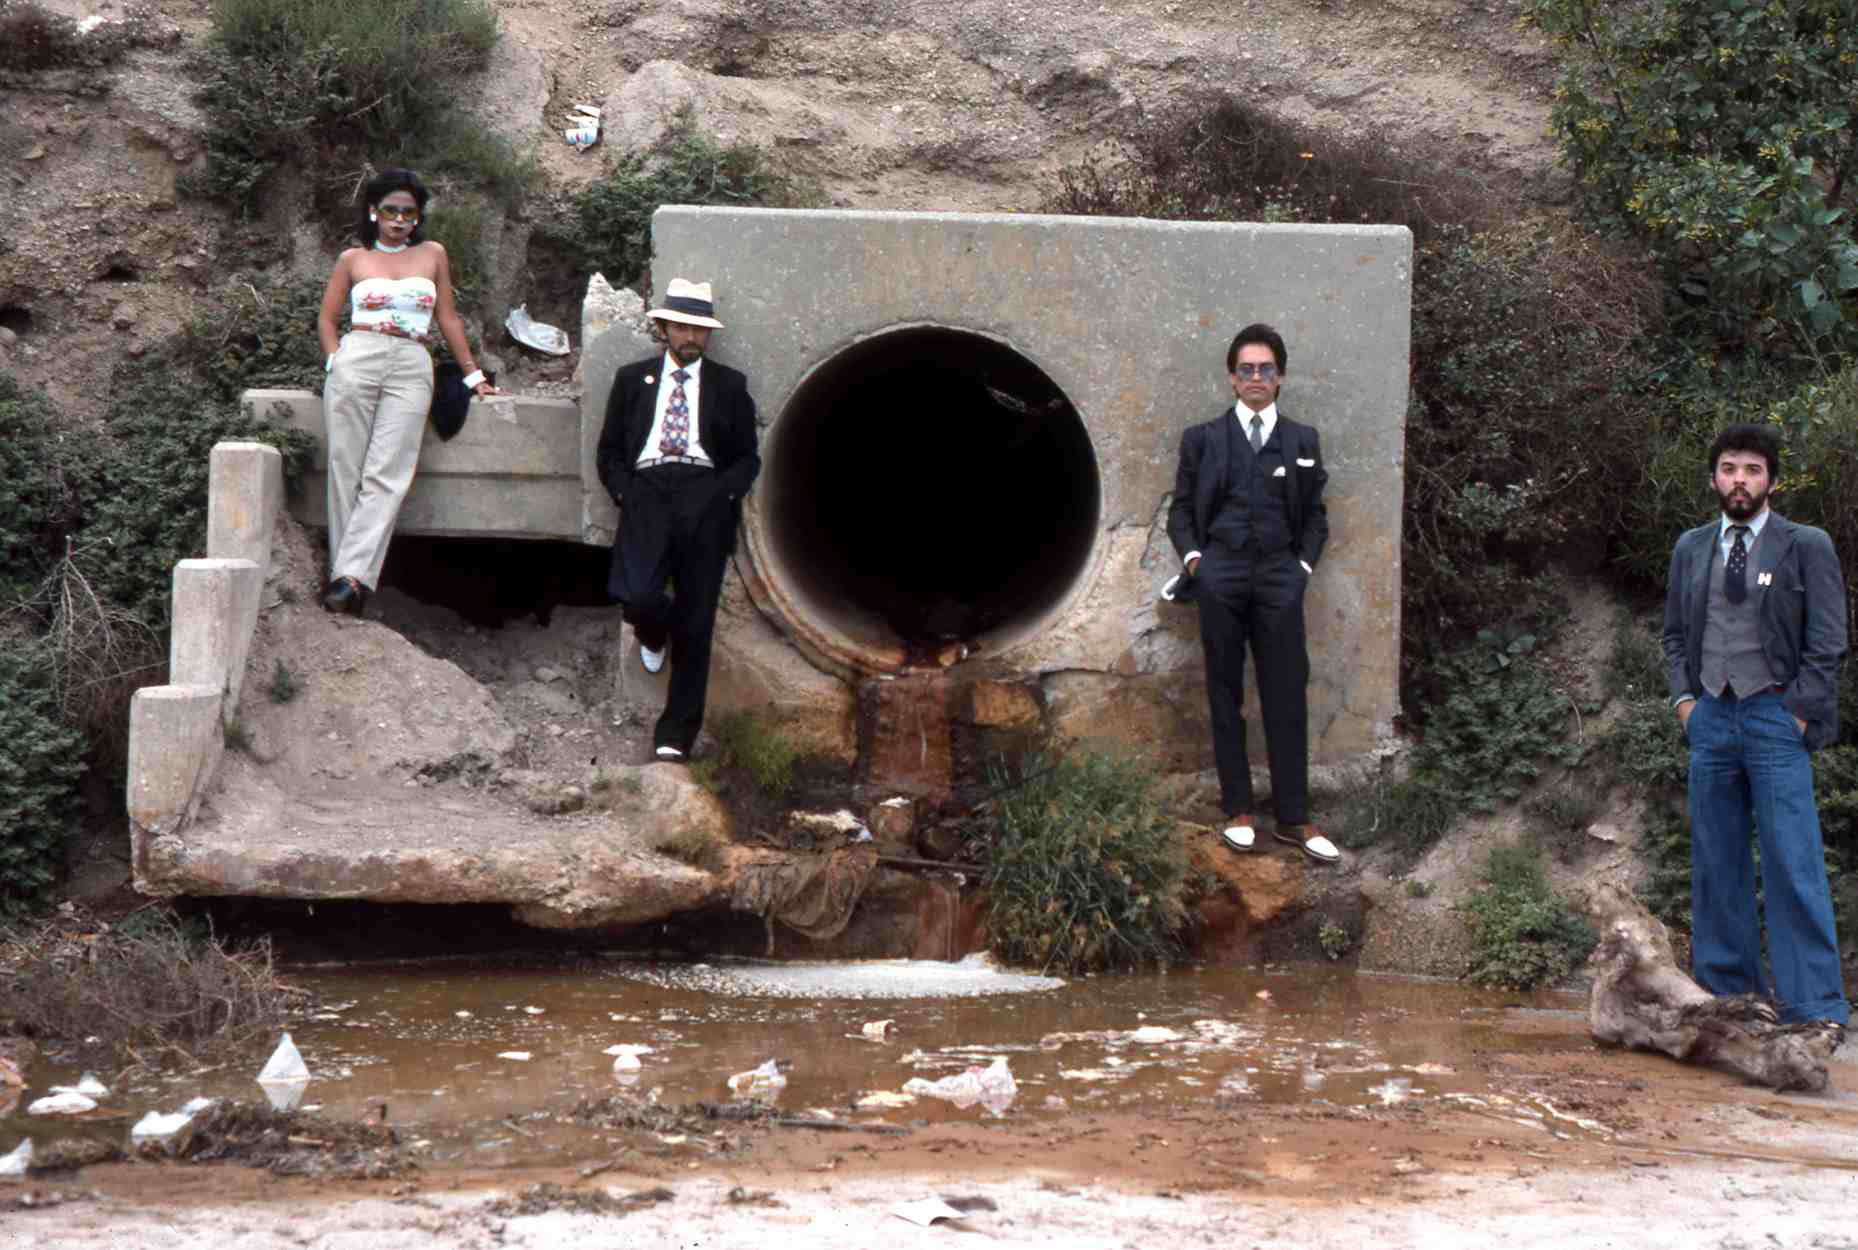 Asco, <em>Asshole Mural</em>, 1974. Colour photograph. Photograph: Harry Gamboa, Jr, showing Patssi Valdez, Humberto Sandoval, Willie Herrón III and Gronk.